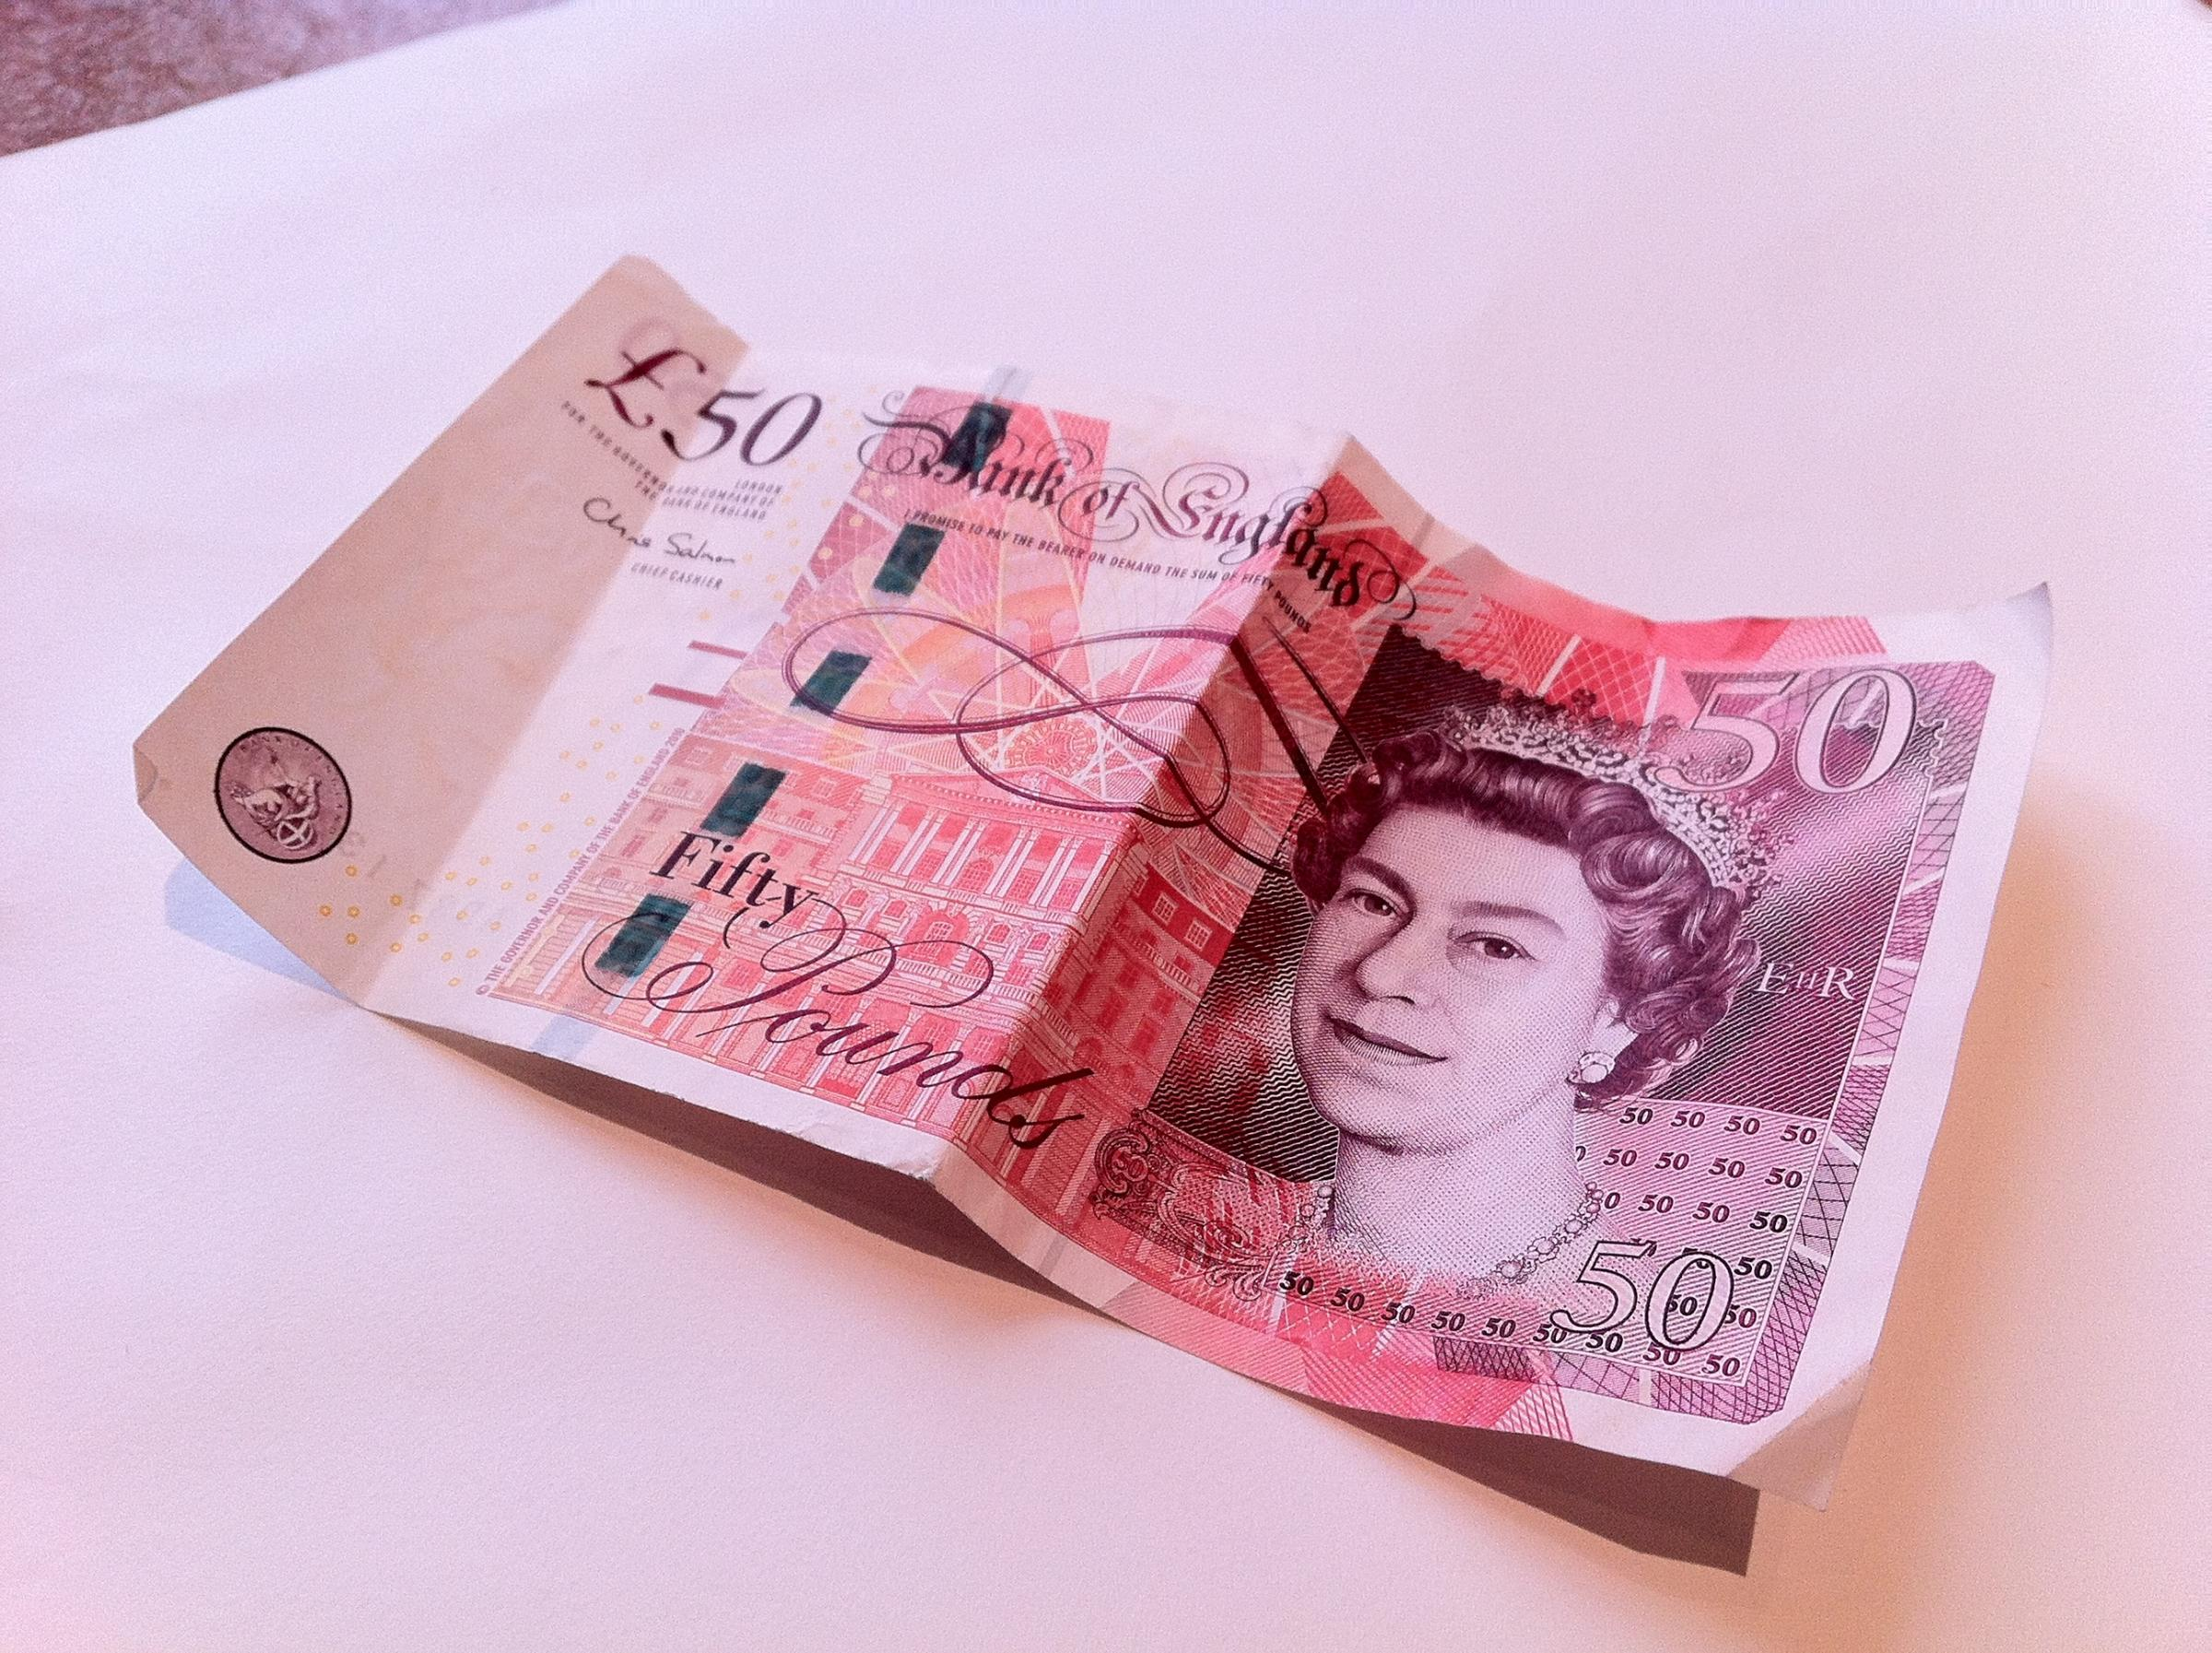 50*50 Warning After Men Try To Spend Fake £50 Notes In Wotton | Gazette Series